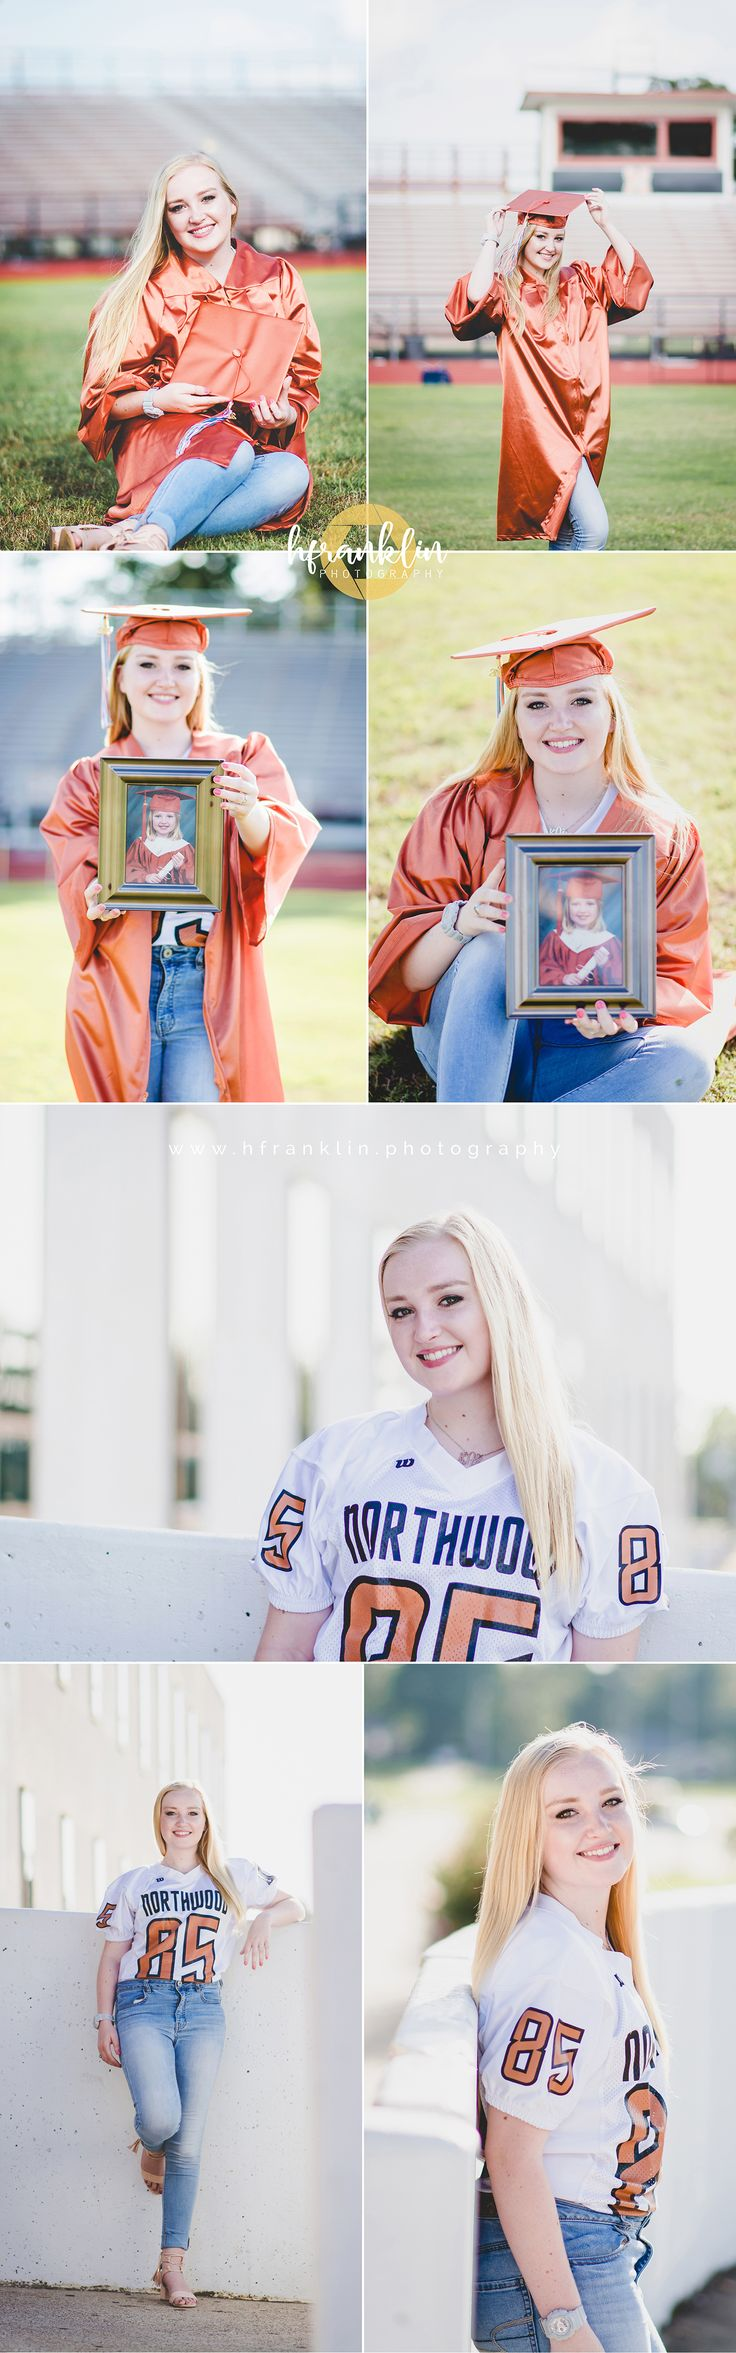 shreveport photographer, hfranklin photography, senior portraits, senior pictures, senior picture ideas, golden light, golden hour, summer senior pictures, summer vibe, senior picture outfit ideas for girls, cap and gown pictures, football jersey senior picture ideas, school picture ideas, graduation pictures, football field